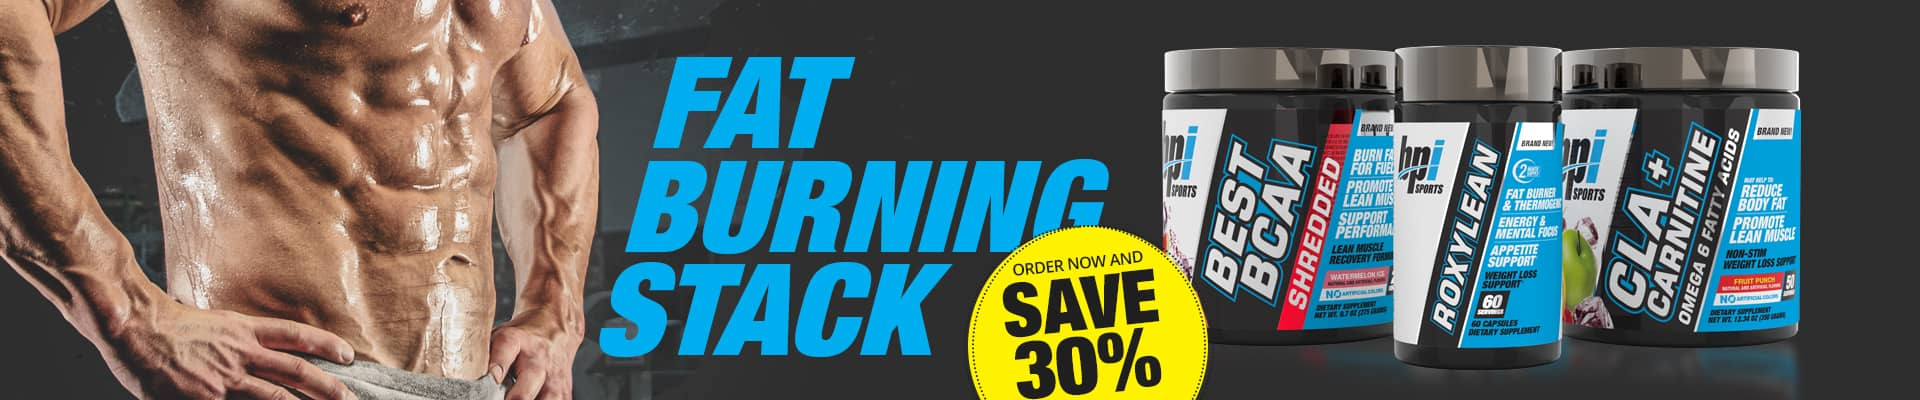 Fat Burning Stack Promo